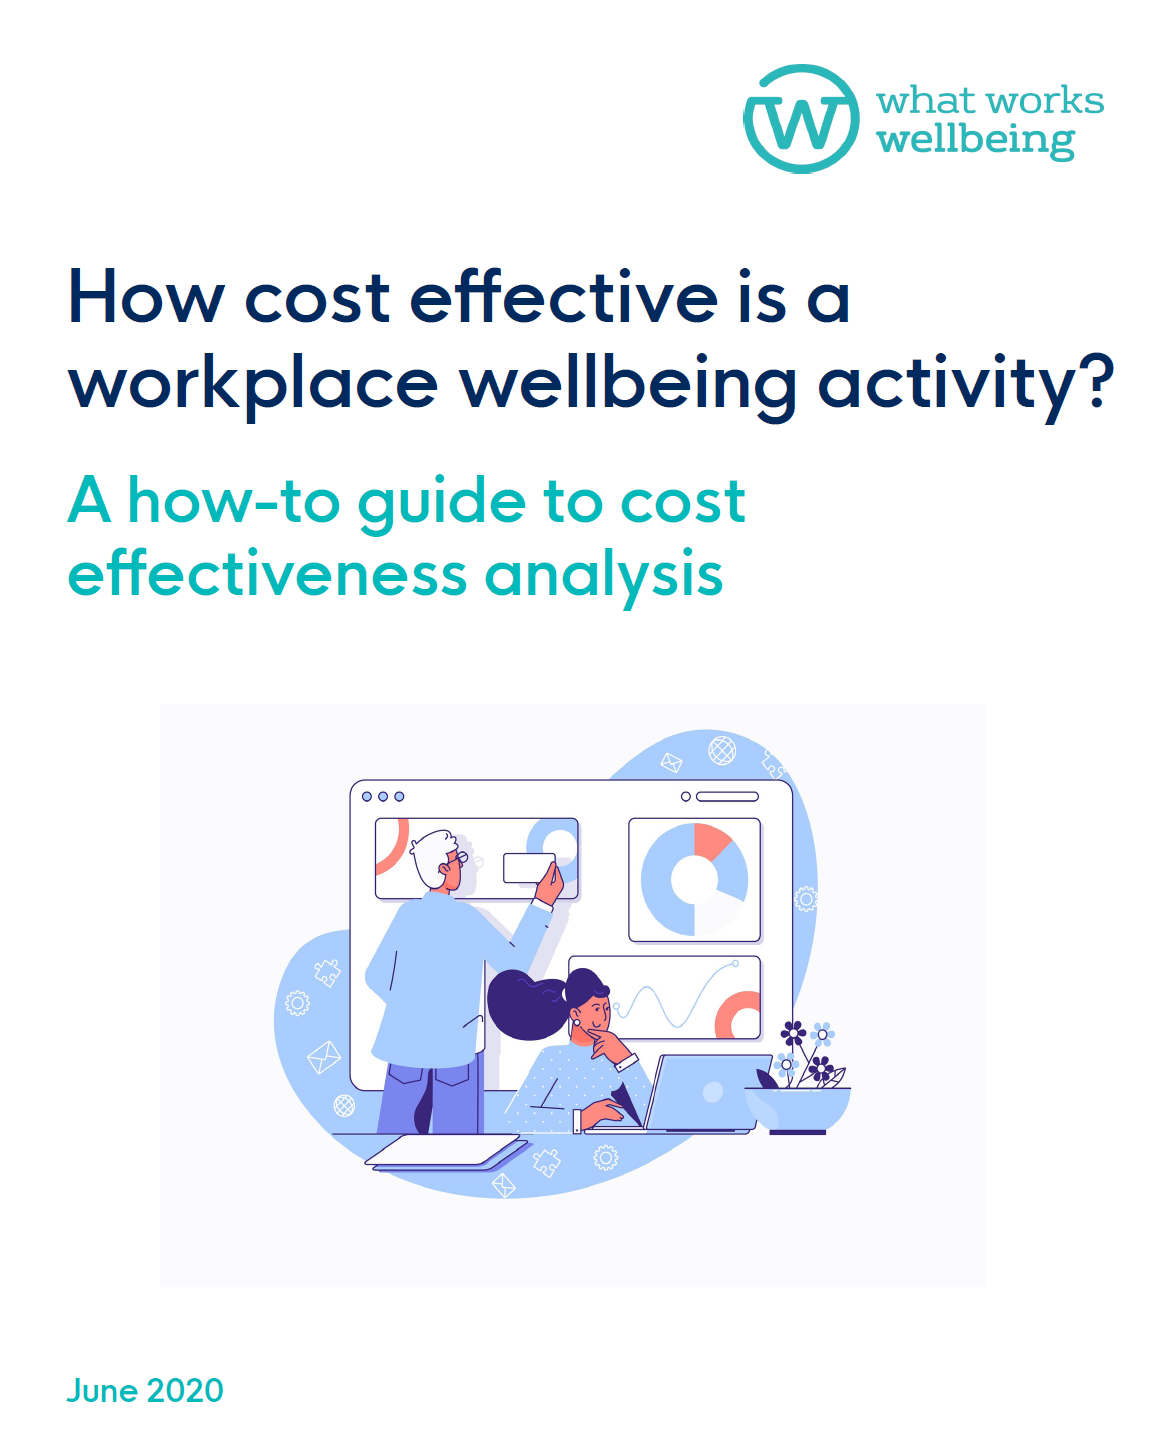 How cost effective is a workplace wellbeing activity?